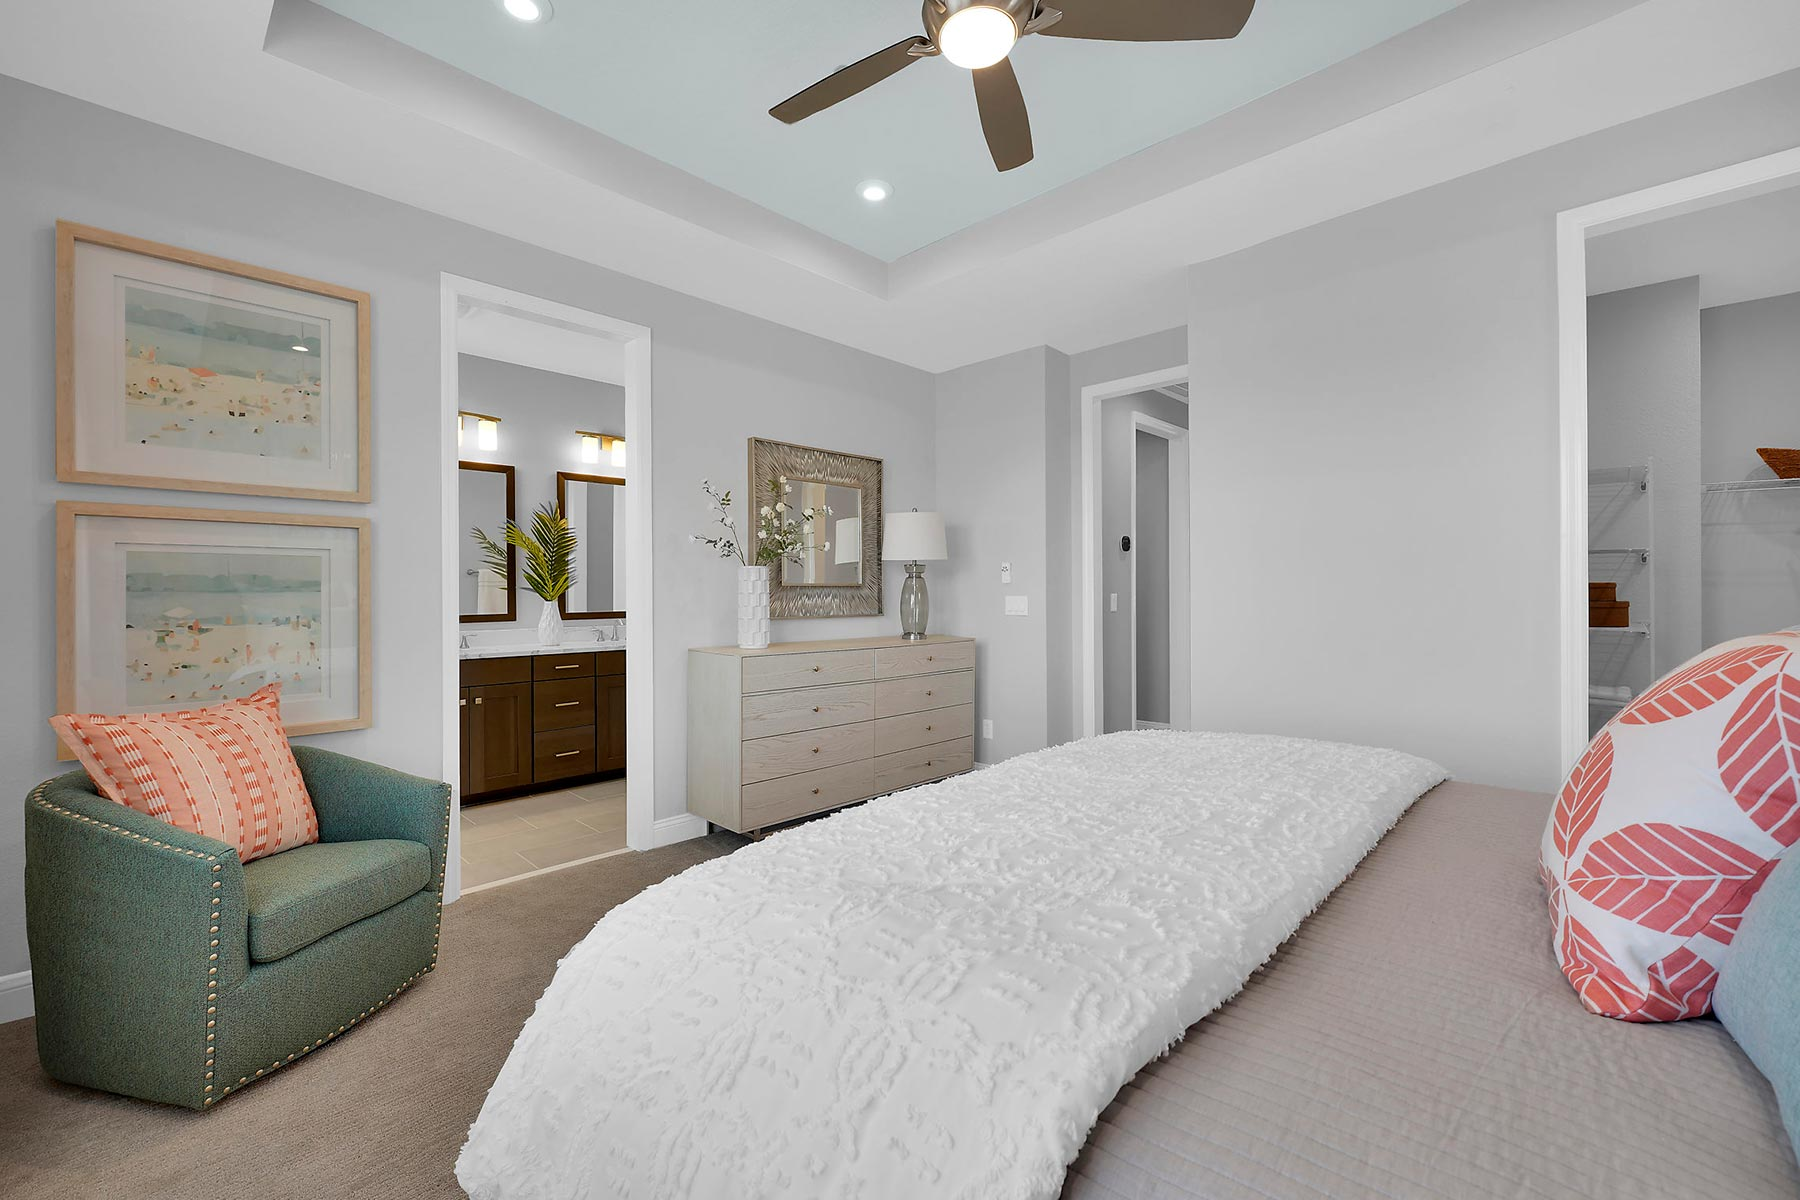 Kai Plan Bedroom at Pablo Cove in Jacksonville Florida by Mattamy Homes